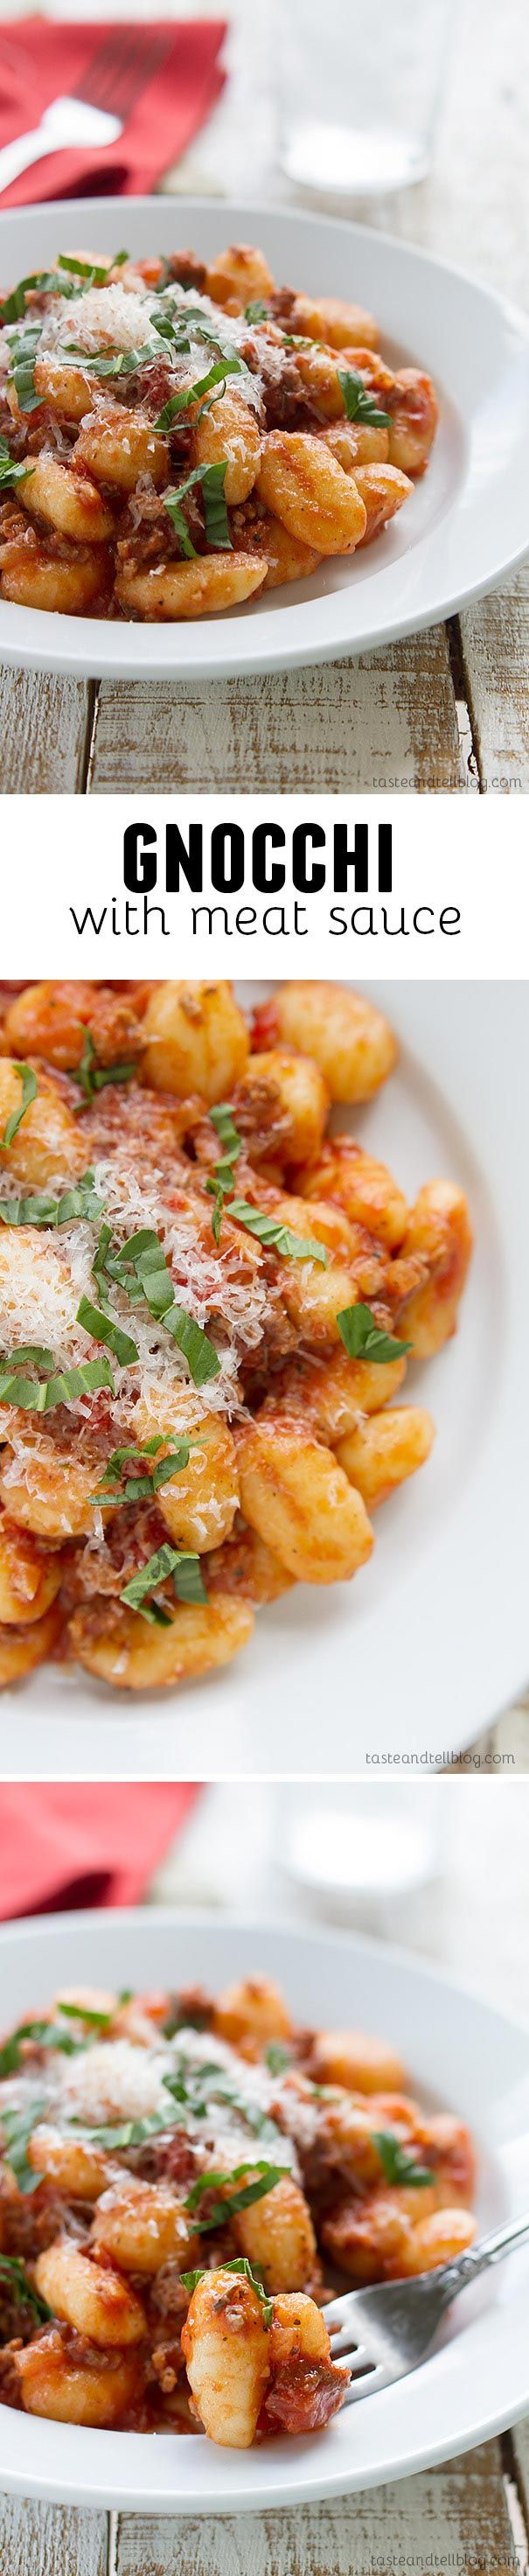 Gnocchi with Meat Sauce - This easy stove-top dinner brings together potato gnocchi with a hearty meat sauce for an easy dinner recipe that the whole family will love.